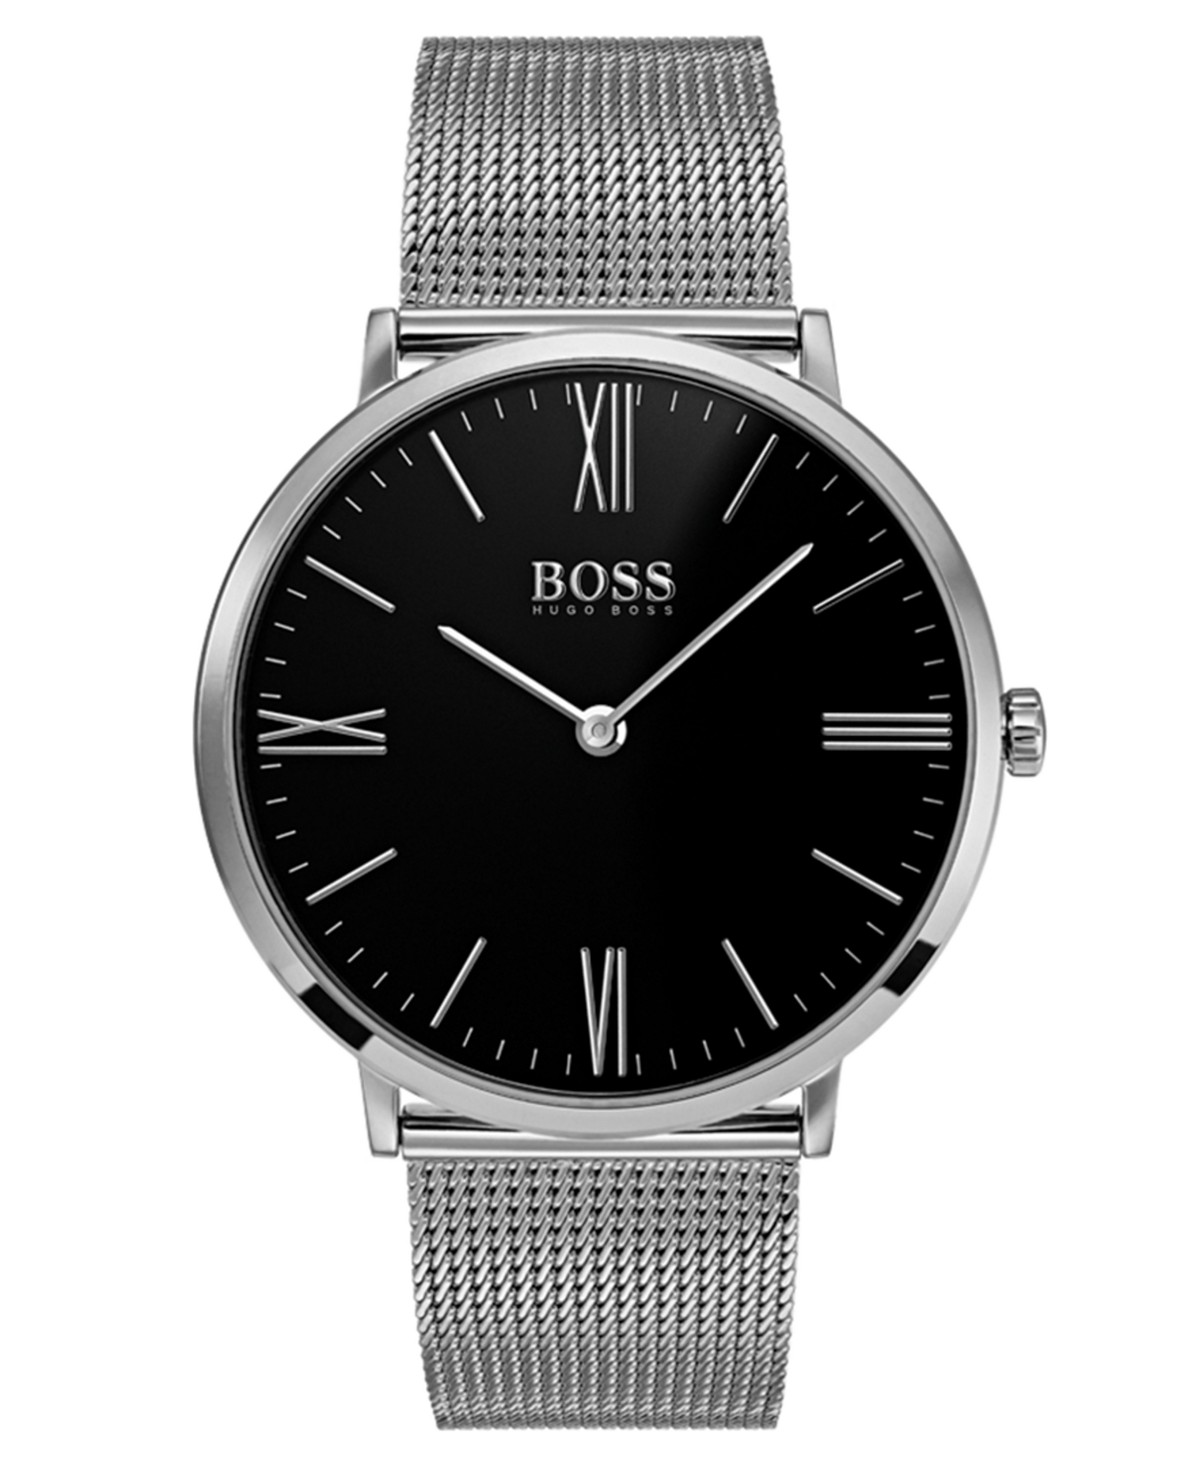 Jackson Stainless Steel Mesh Bracelet Watch <table align='center'> <tr><th>Size:42mm</th></tr><tr><td>$224.00</td></tr></table>